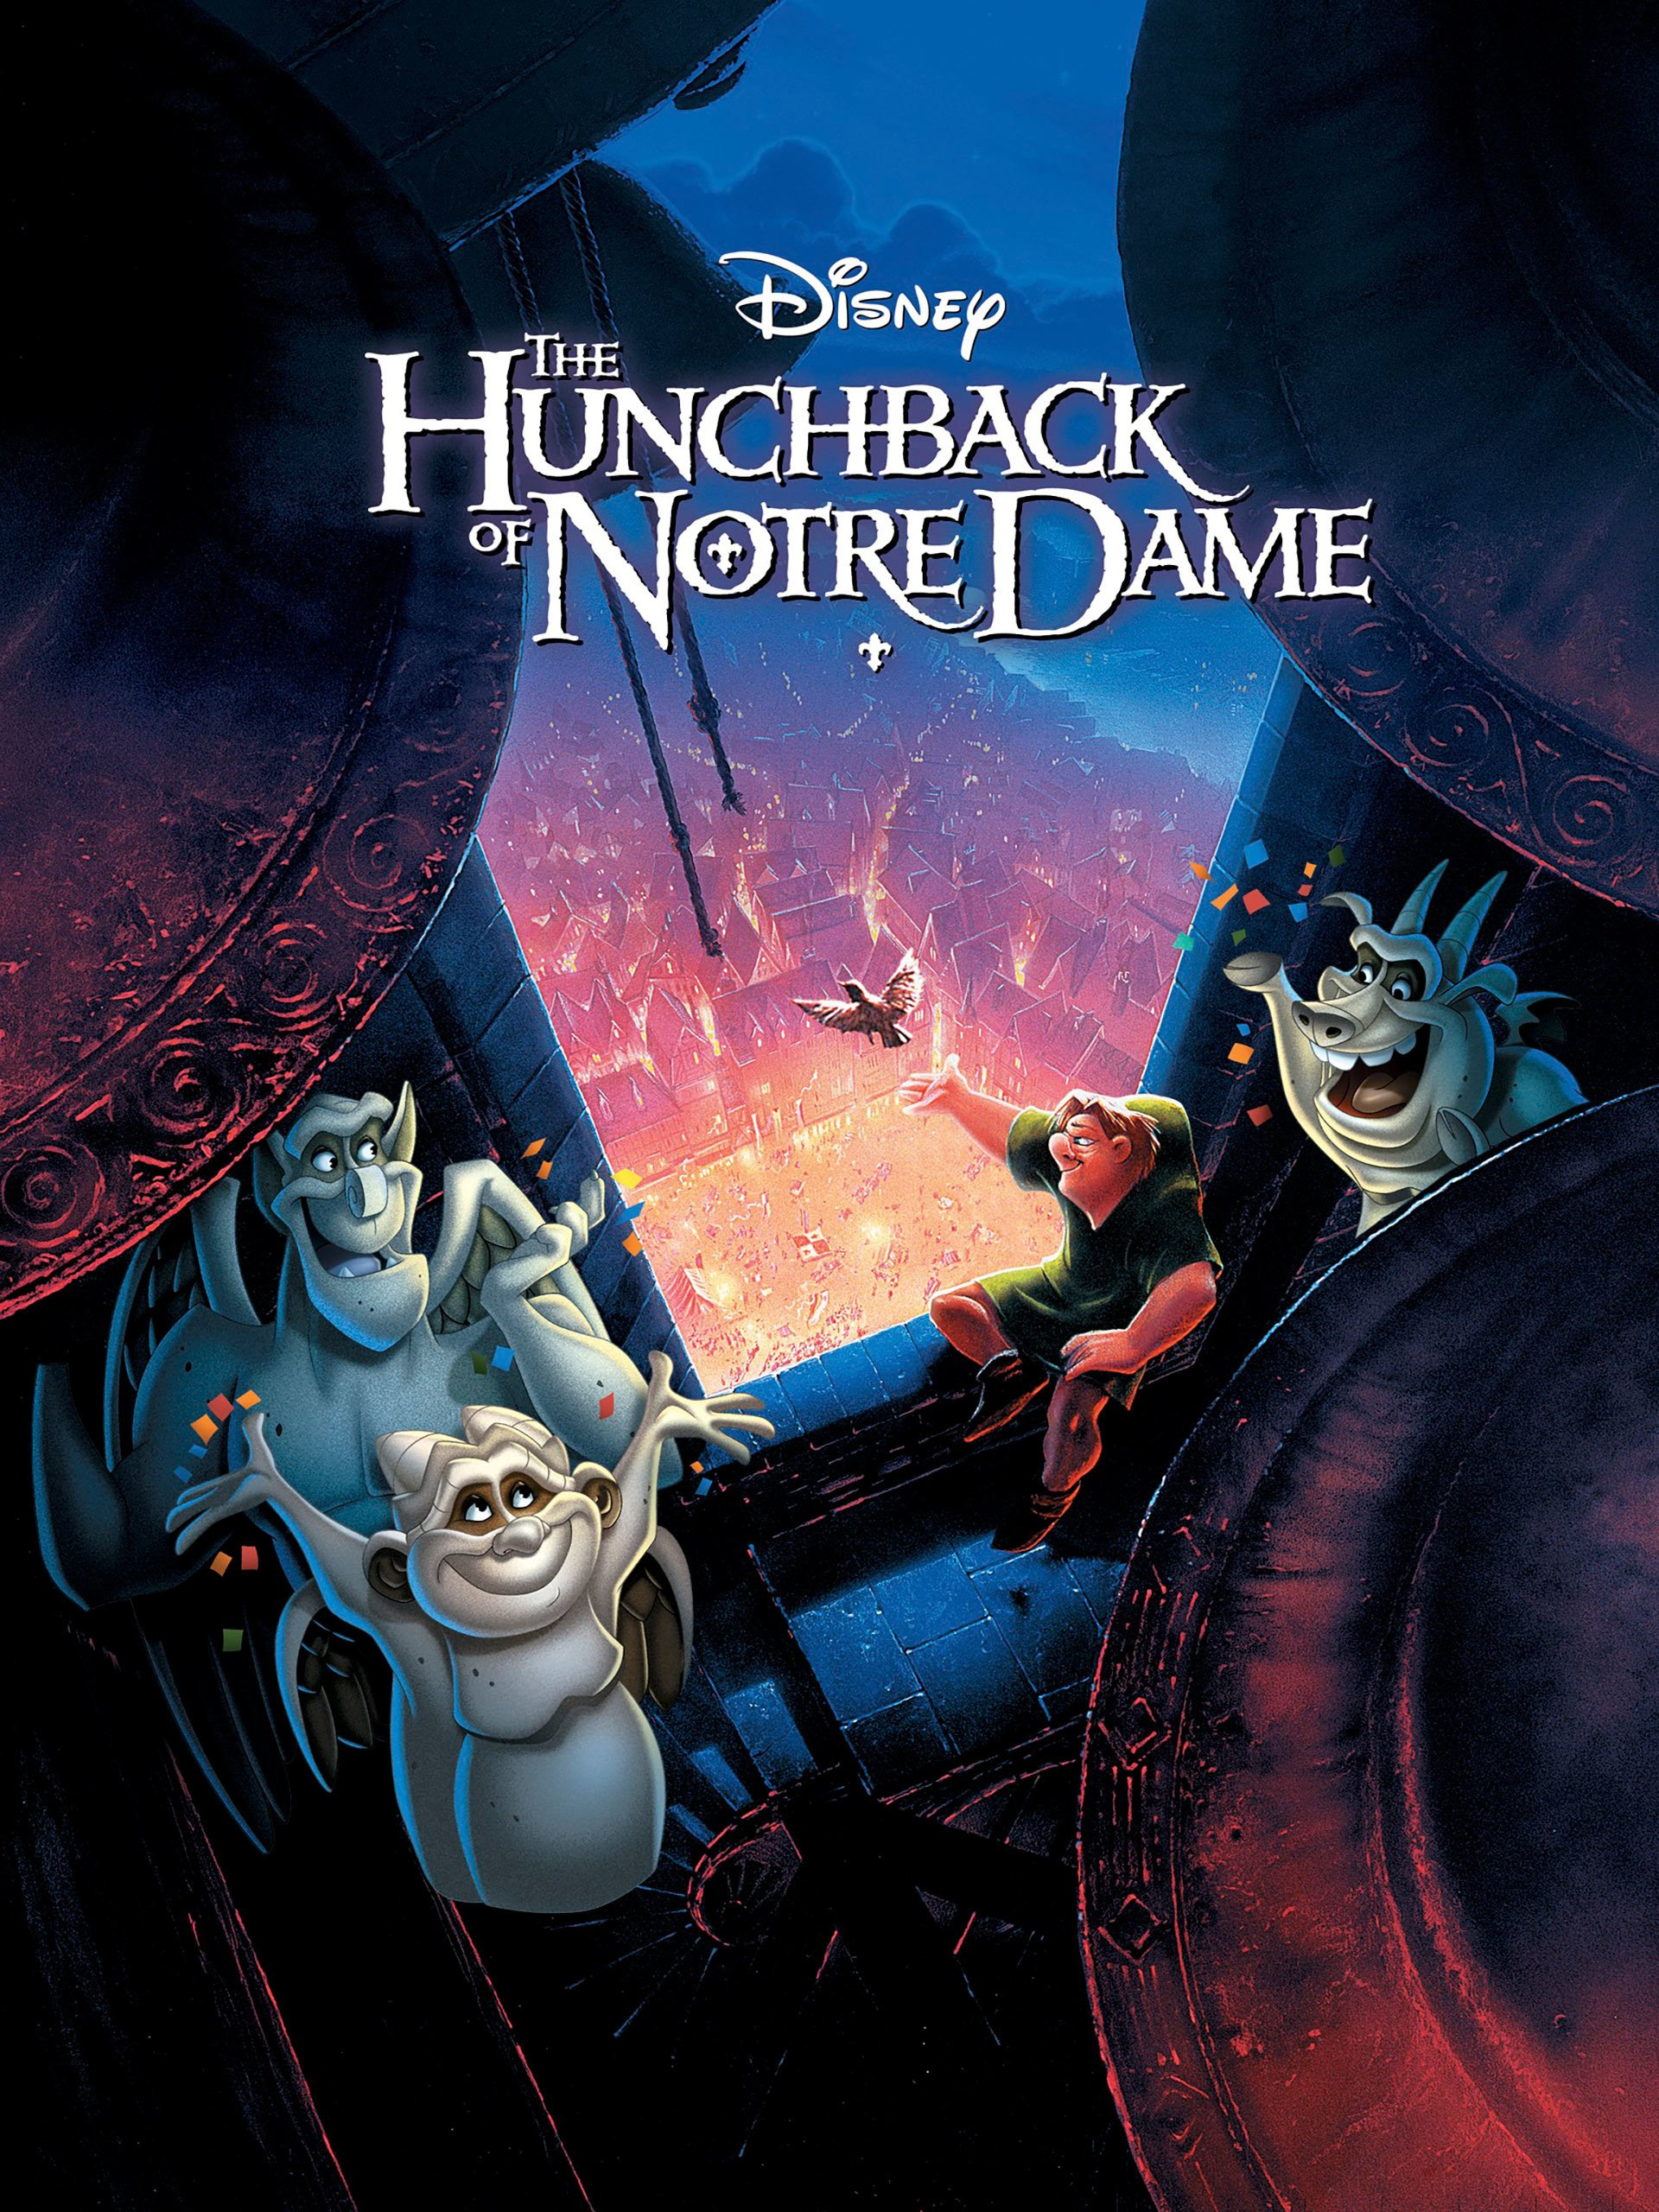 The Hunchback of Notre Dame (1996) - Directed by: Gary Trousdale, Kirk WiseStarring: Tom Hulce, Demi Moore, Tony JayRated: GRunning Time: 1h 35mTMM Score: 4.5 StarsSTRENGTHS: Dark Setting, Beautiful Animation, Good Message, Great MusicWEAKNESSES: Overly Silly Characters, Some Strange Writing Choices